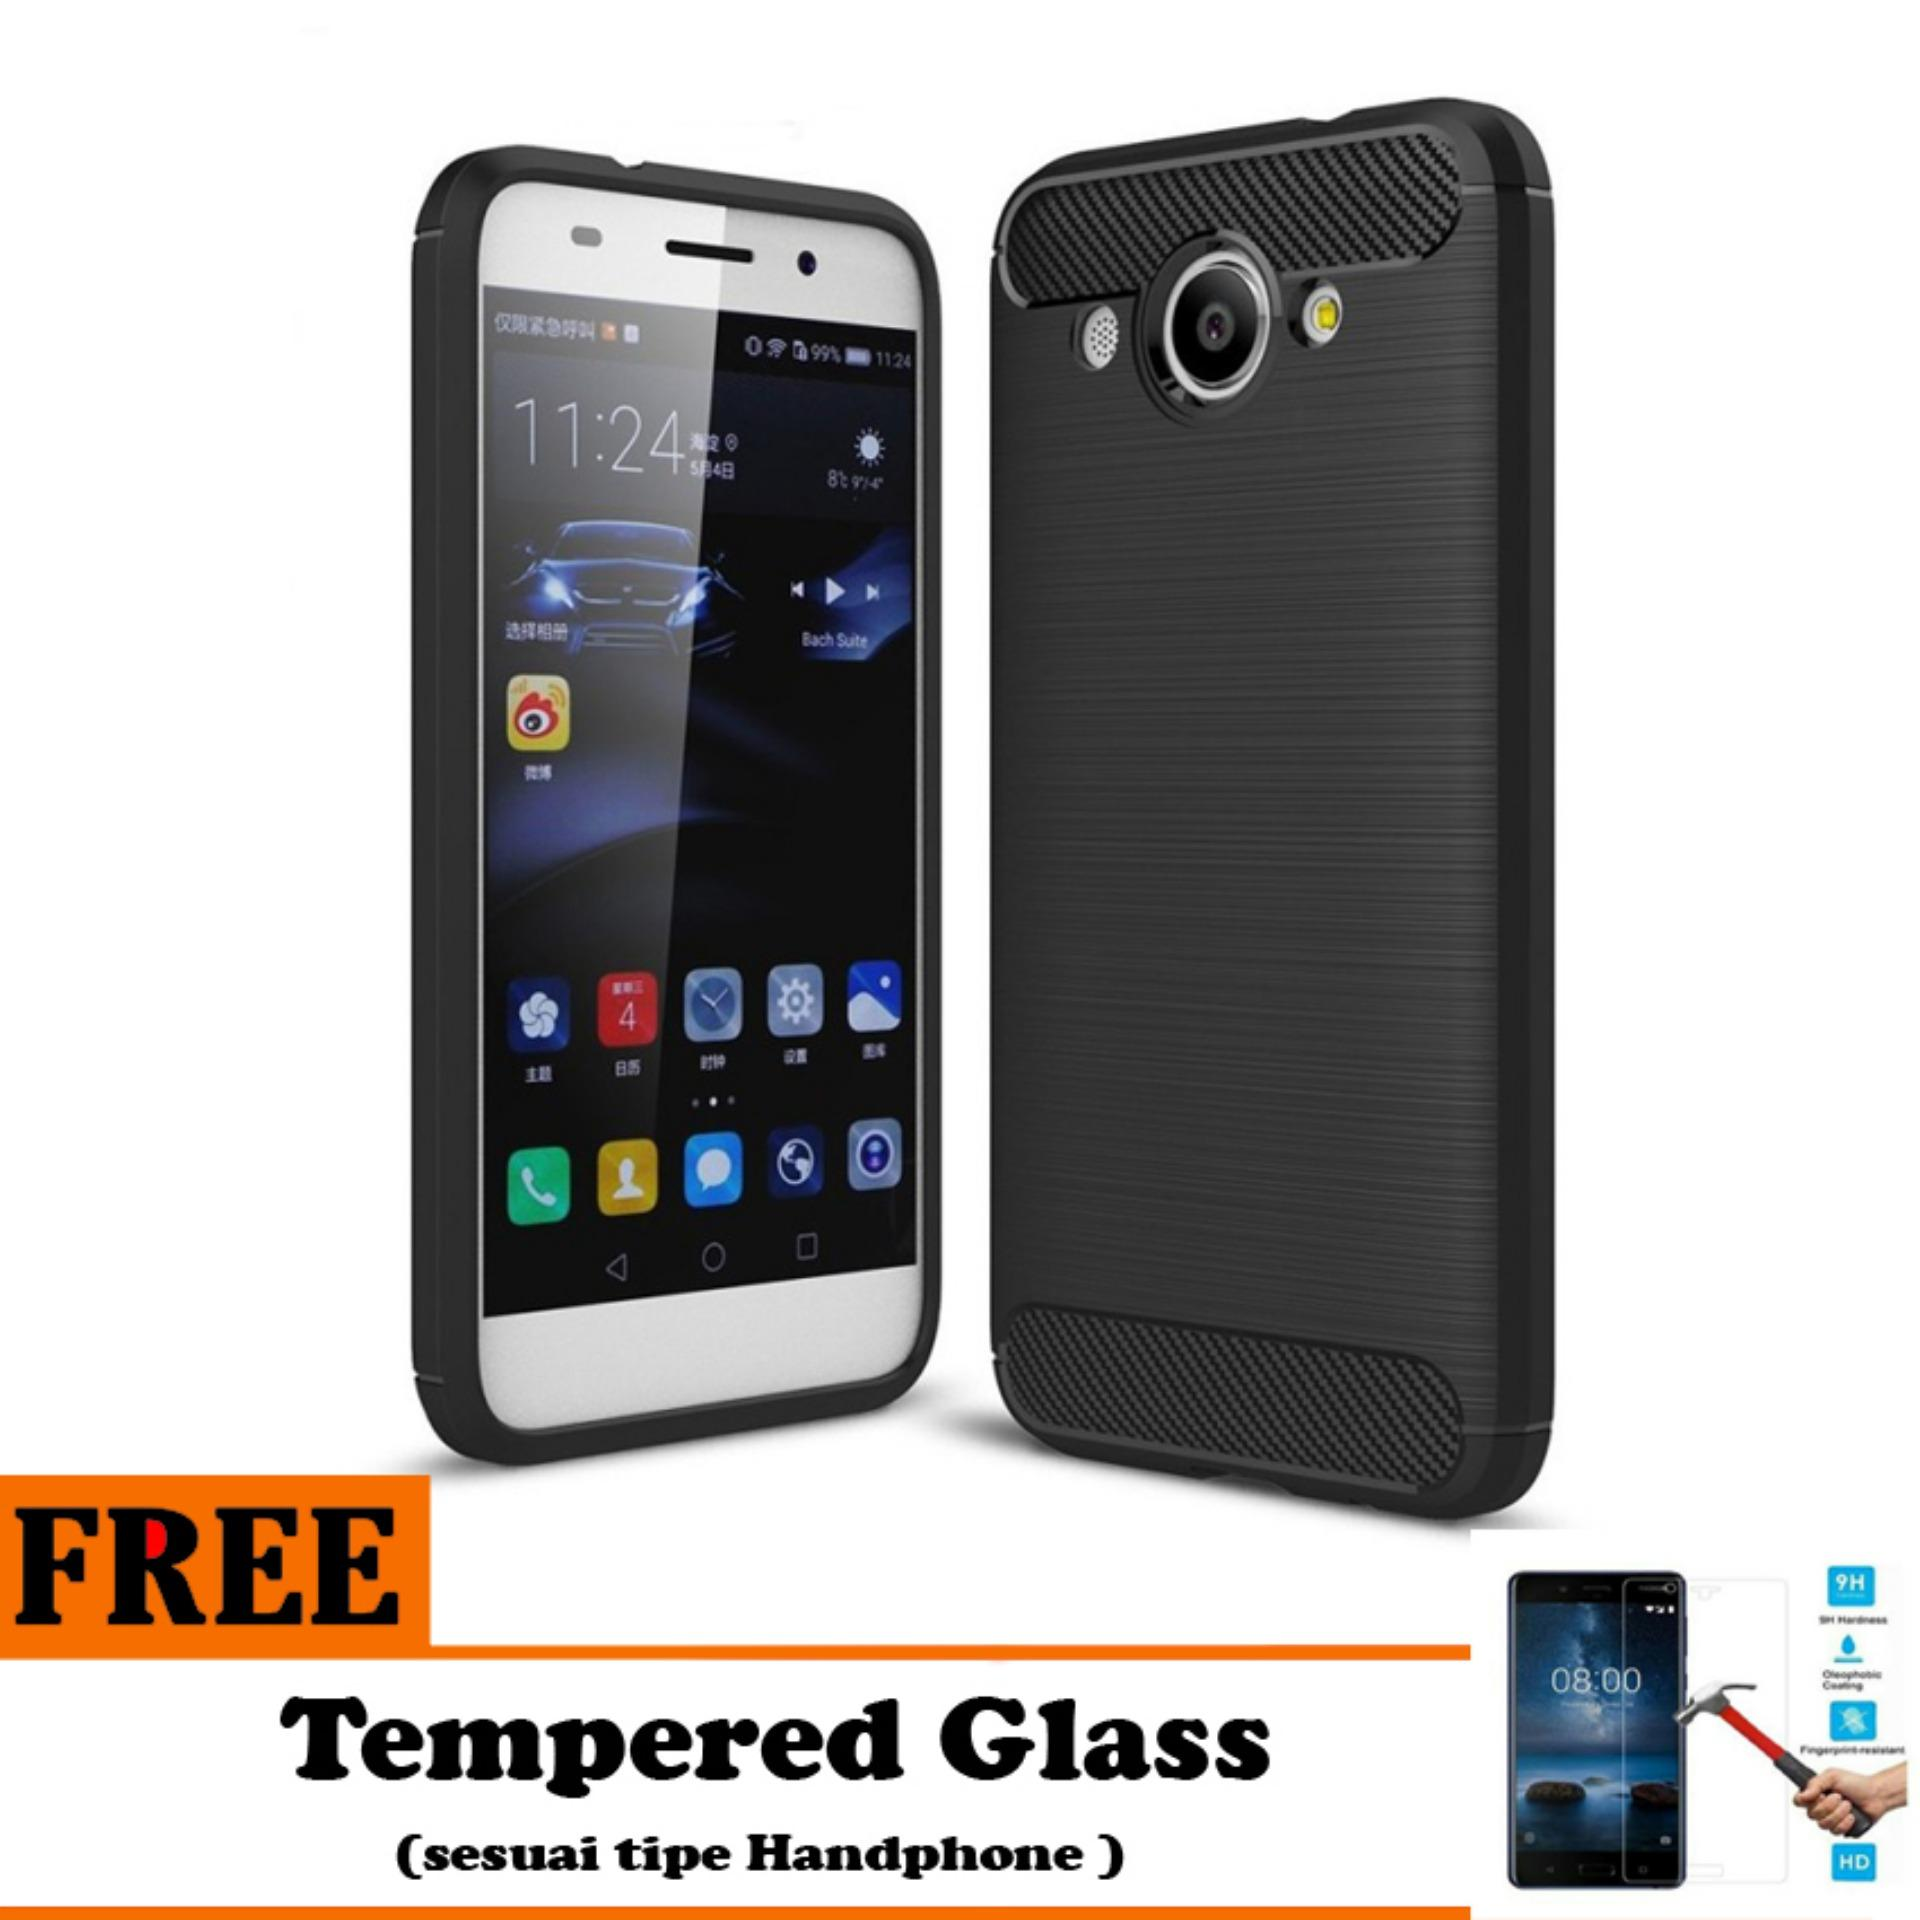 Softcase Ipaky Shockproof Matte Black karbon untuk Huawei Y3 2017   - Free Tempered Glass